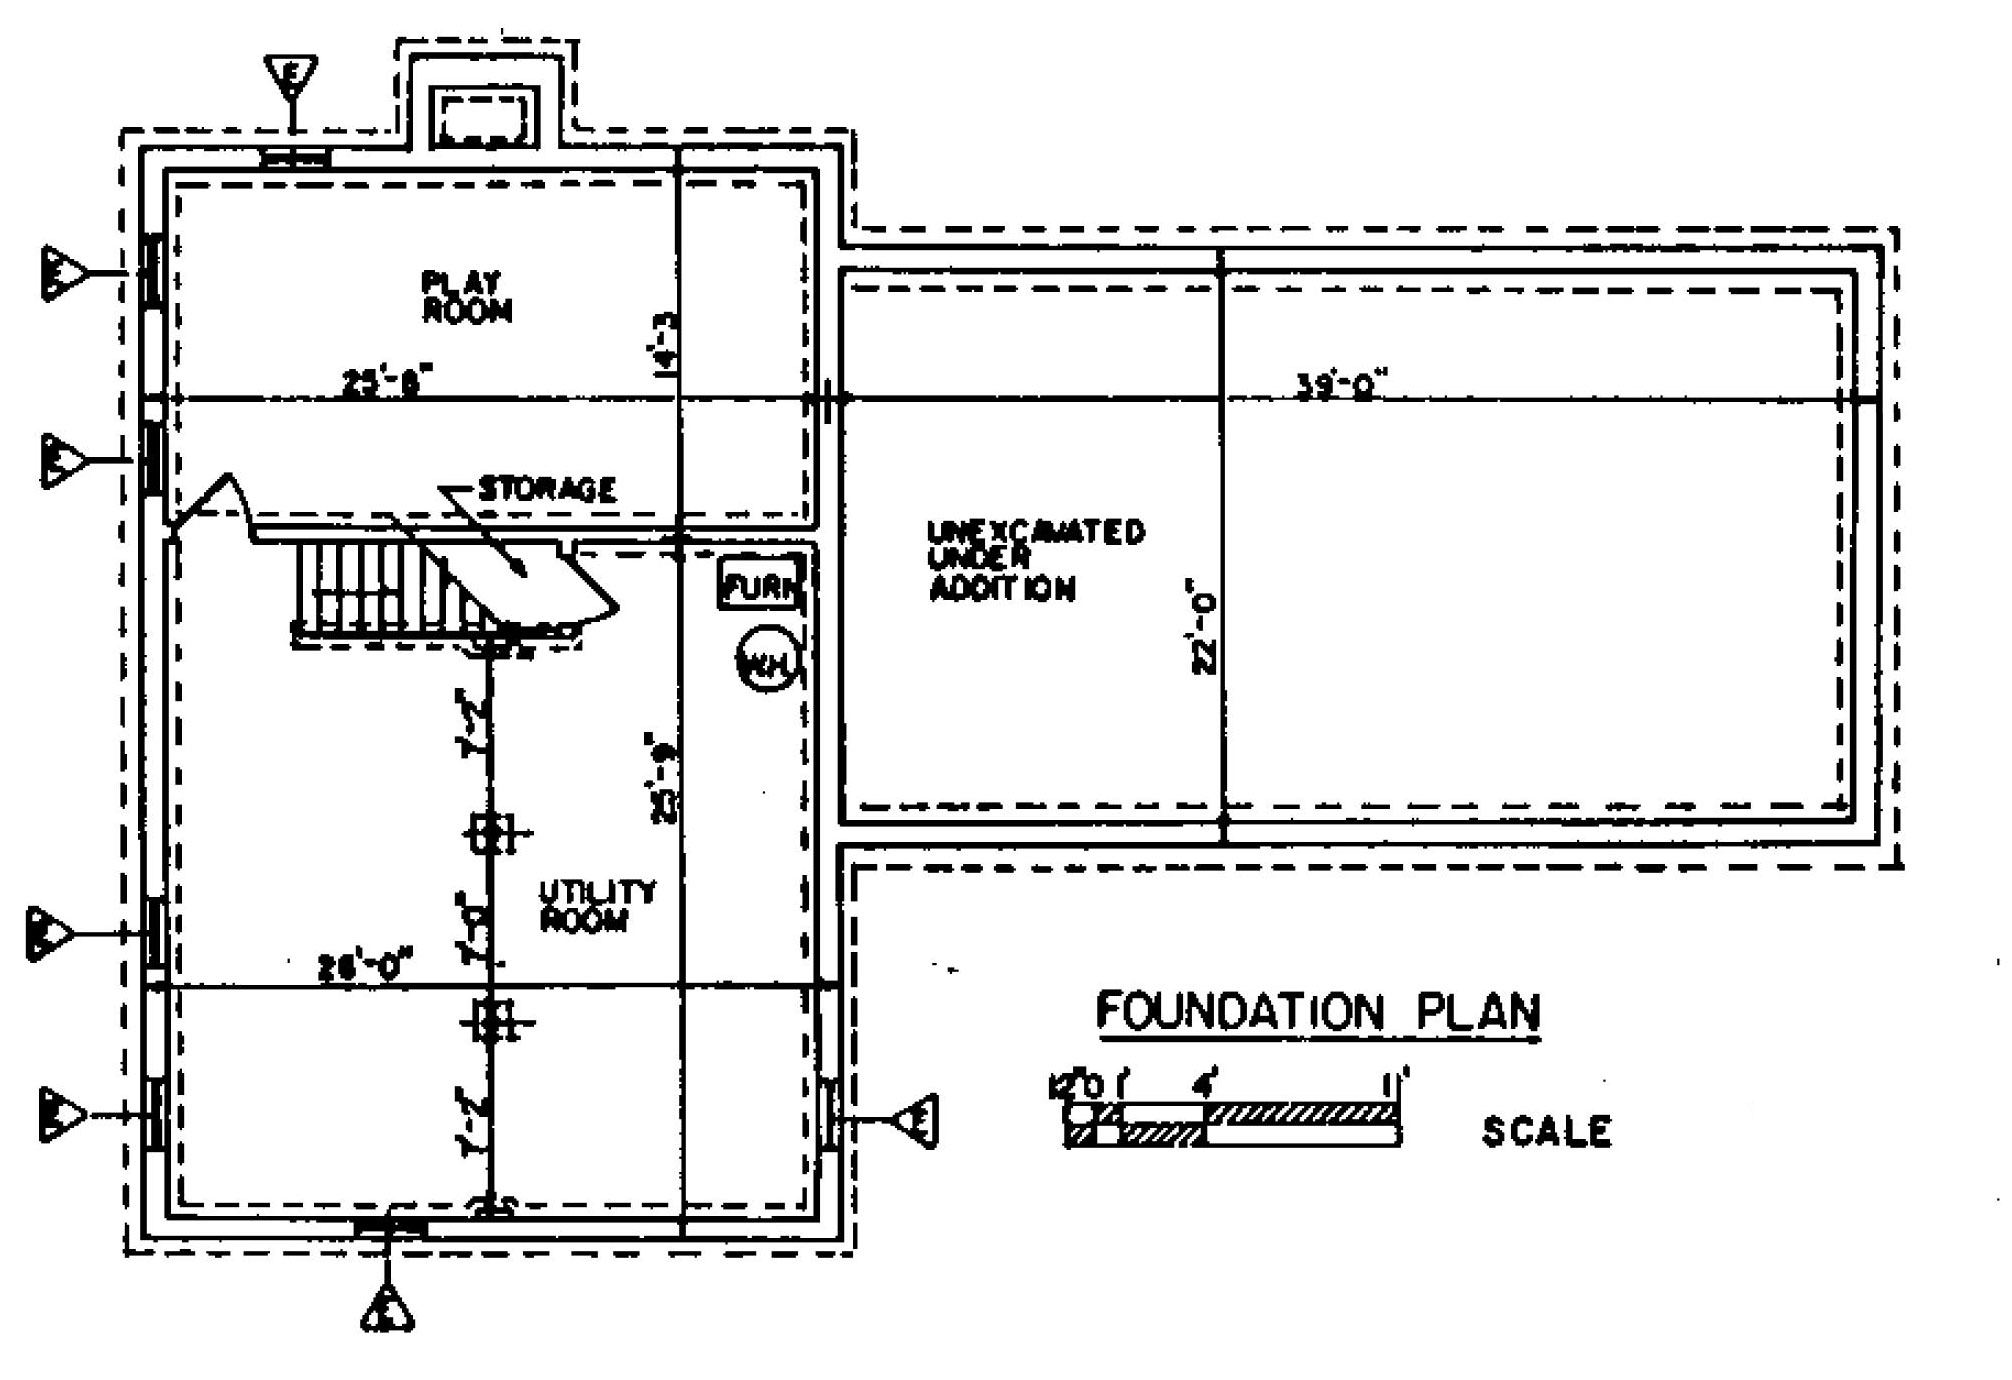 Basement Foundation Design house foundation design images image gallery house foundation